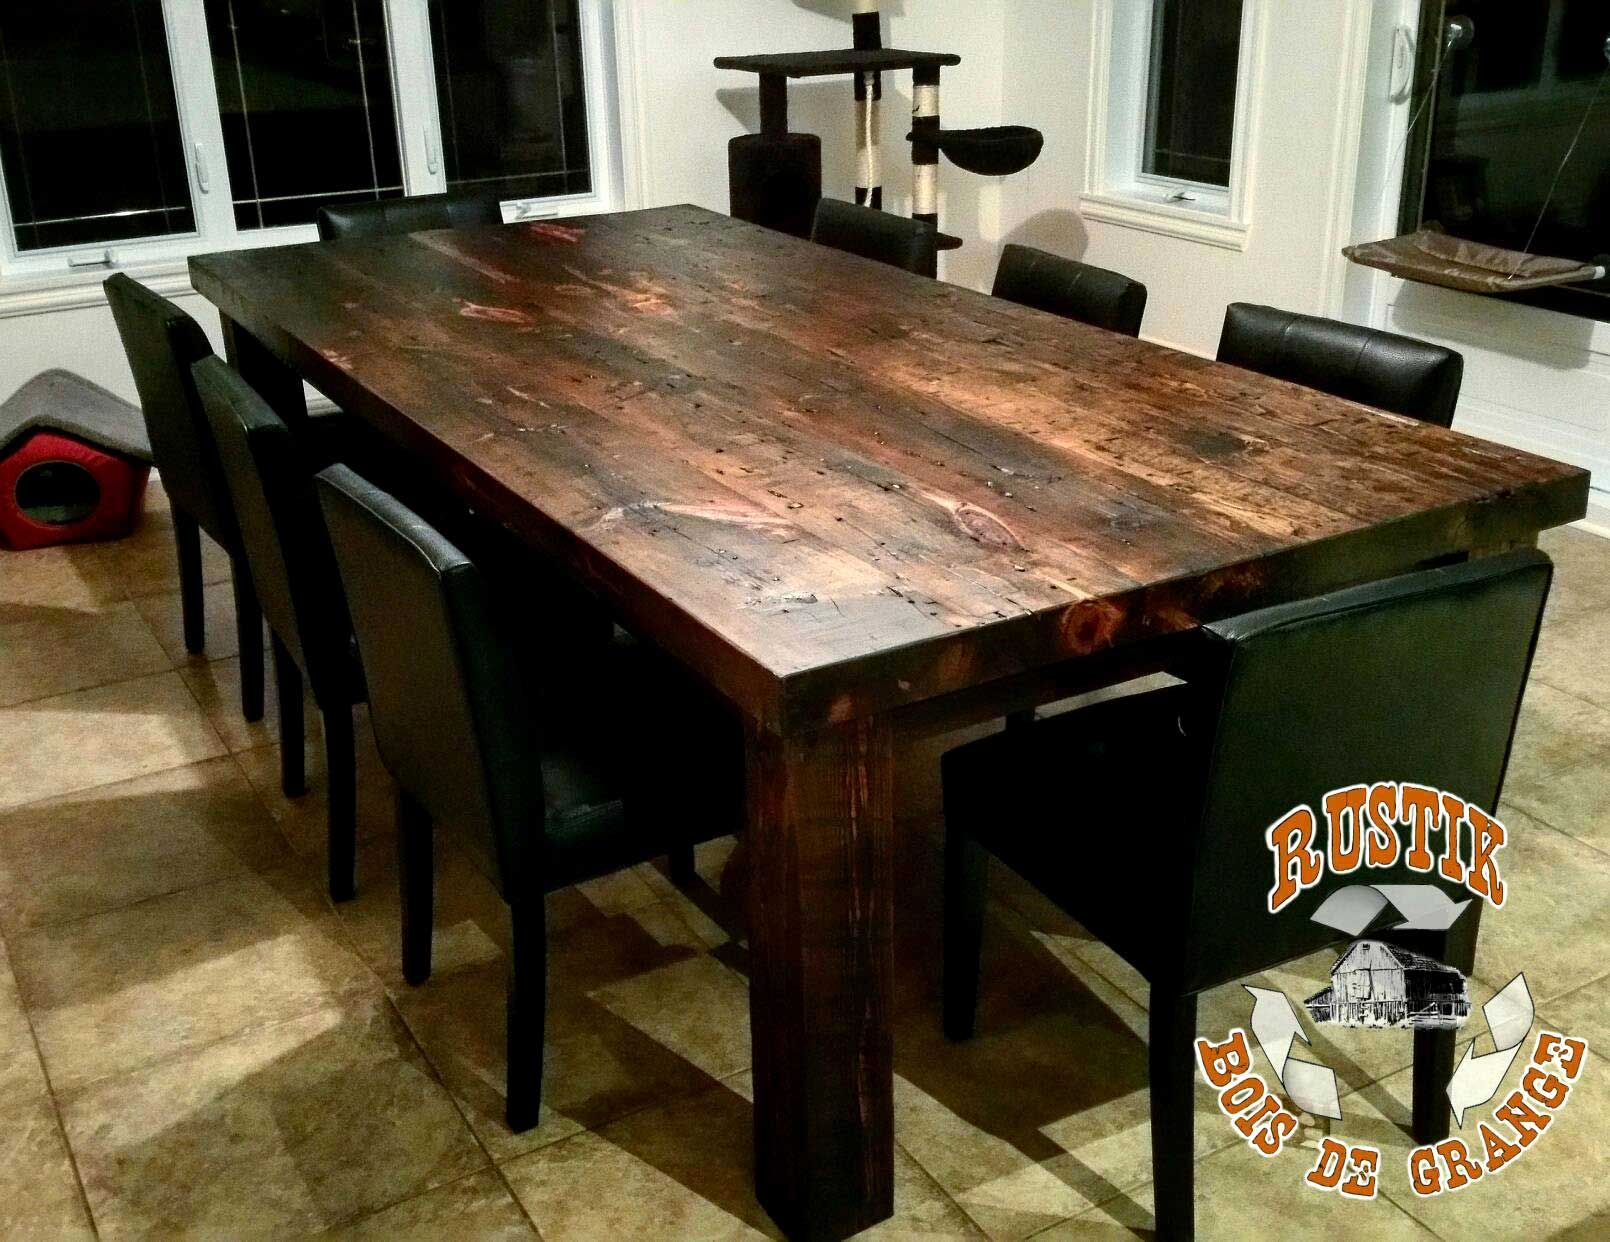 Cuisine Bois Massif Pas Cher Beau Table De Cuisine Moderne En Bois Genial Table Cuisine T Dining Room Industrial Industrial Dining Room Table Dining Room Table